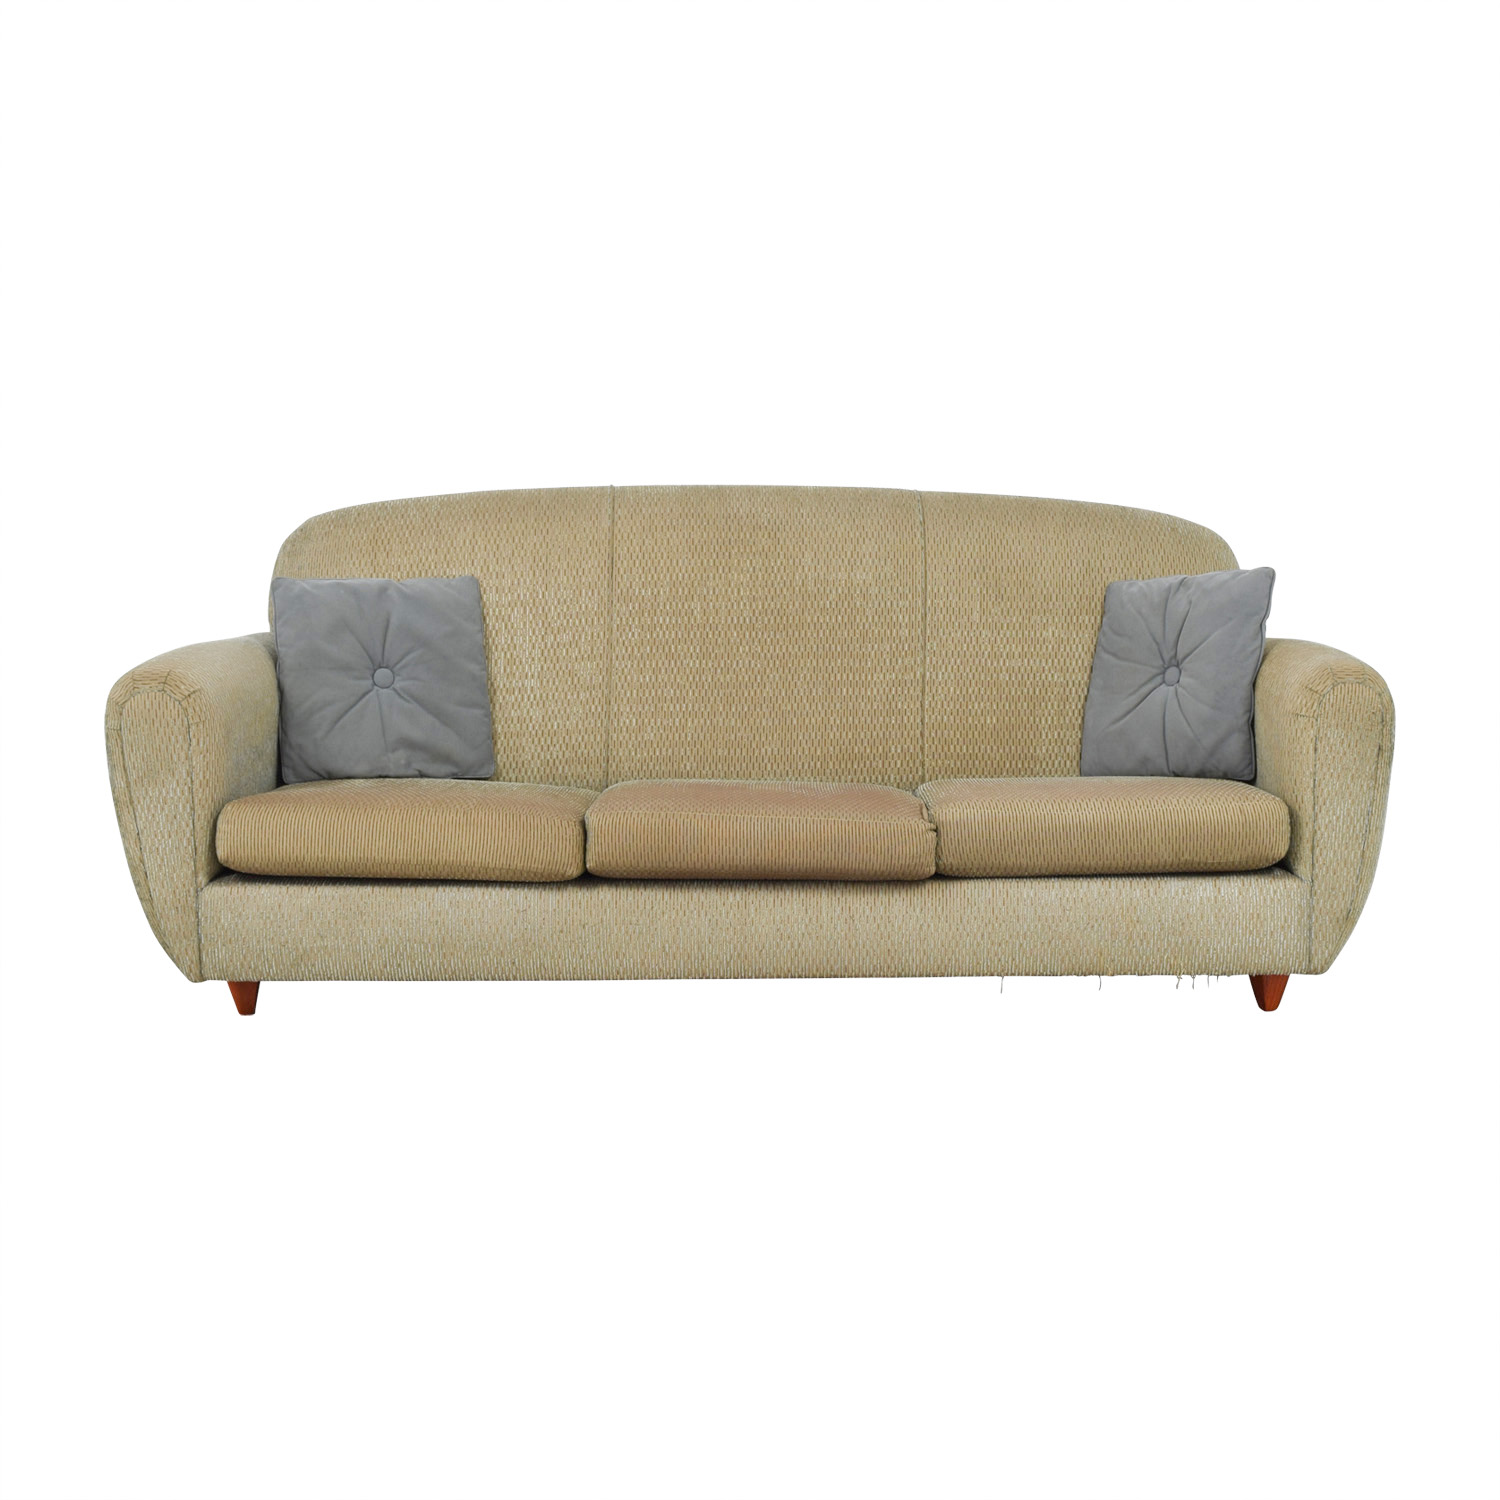 Green Multi-Colored Three-Cushion Sofa Classic Sofas